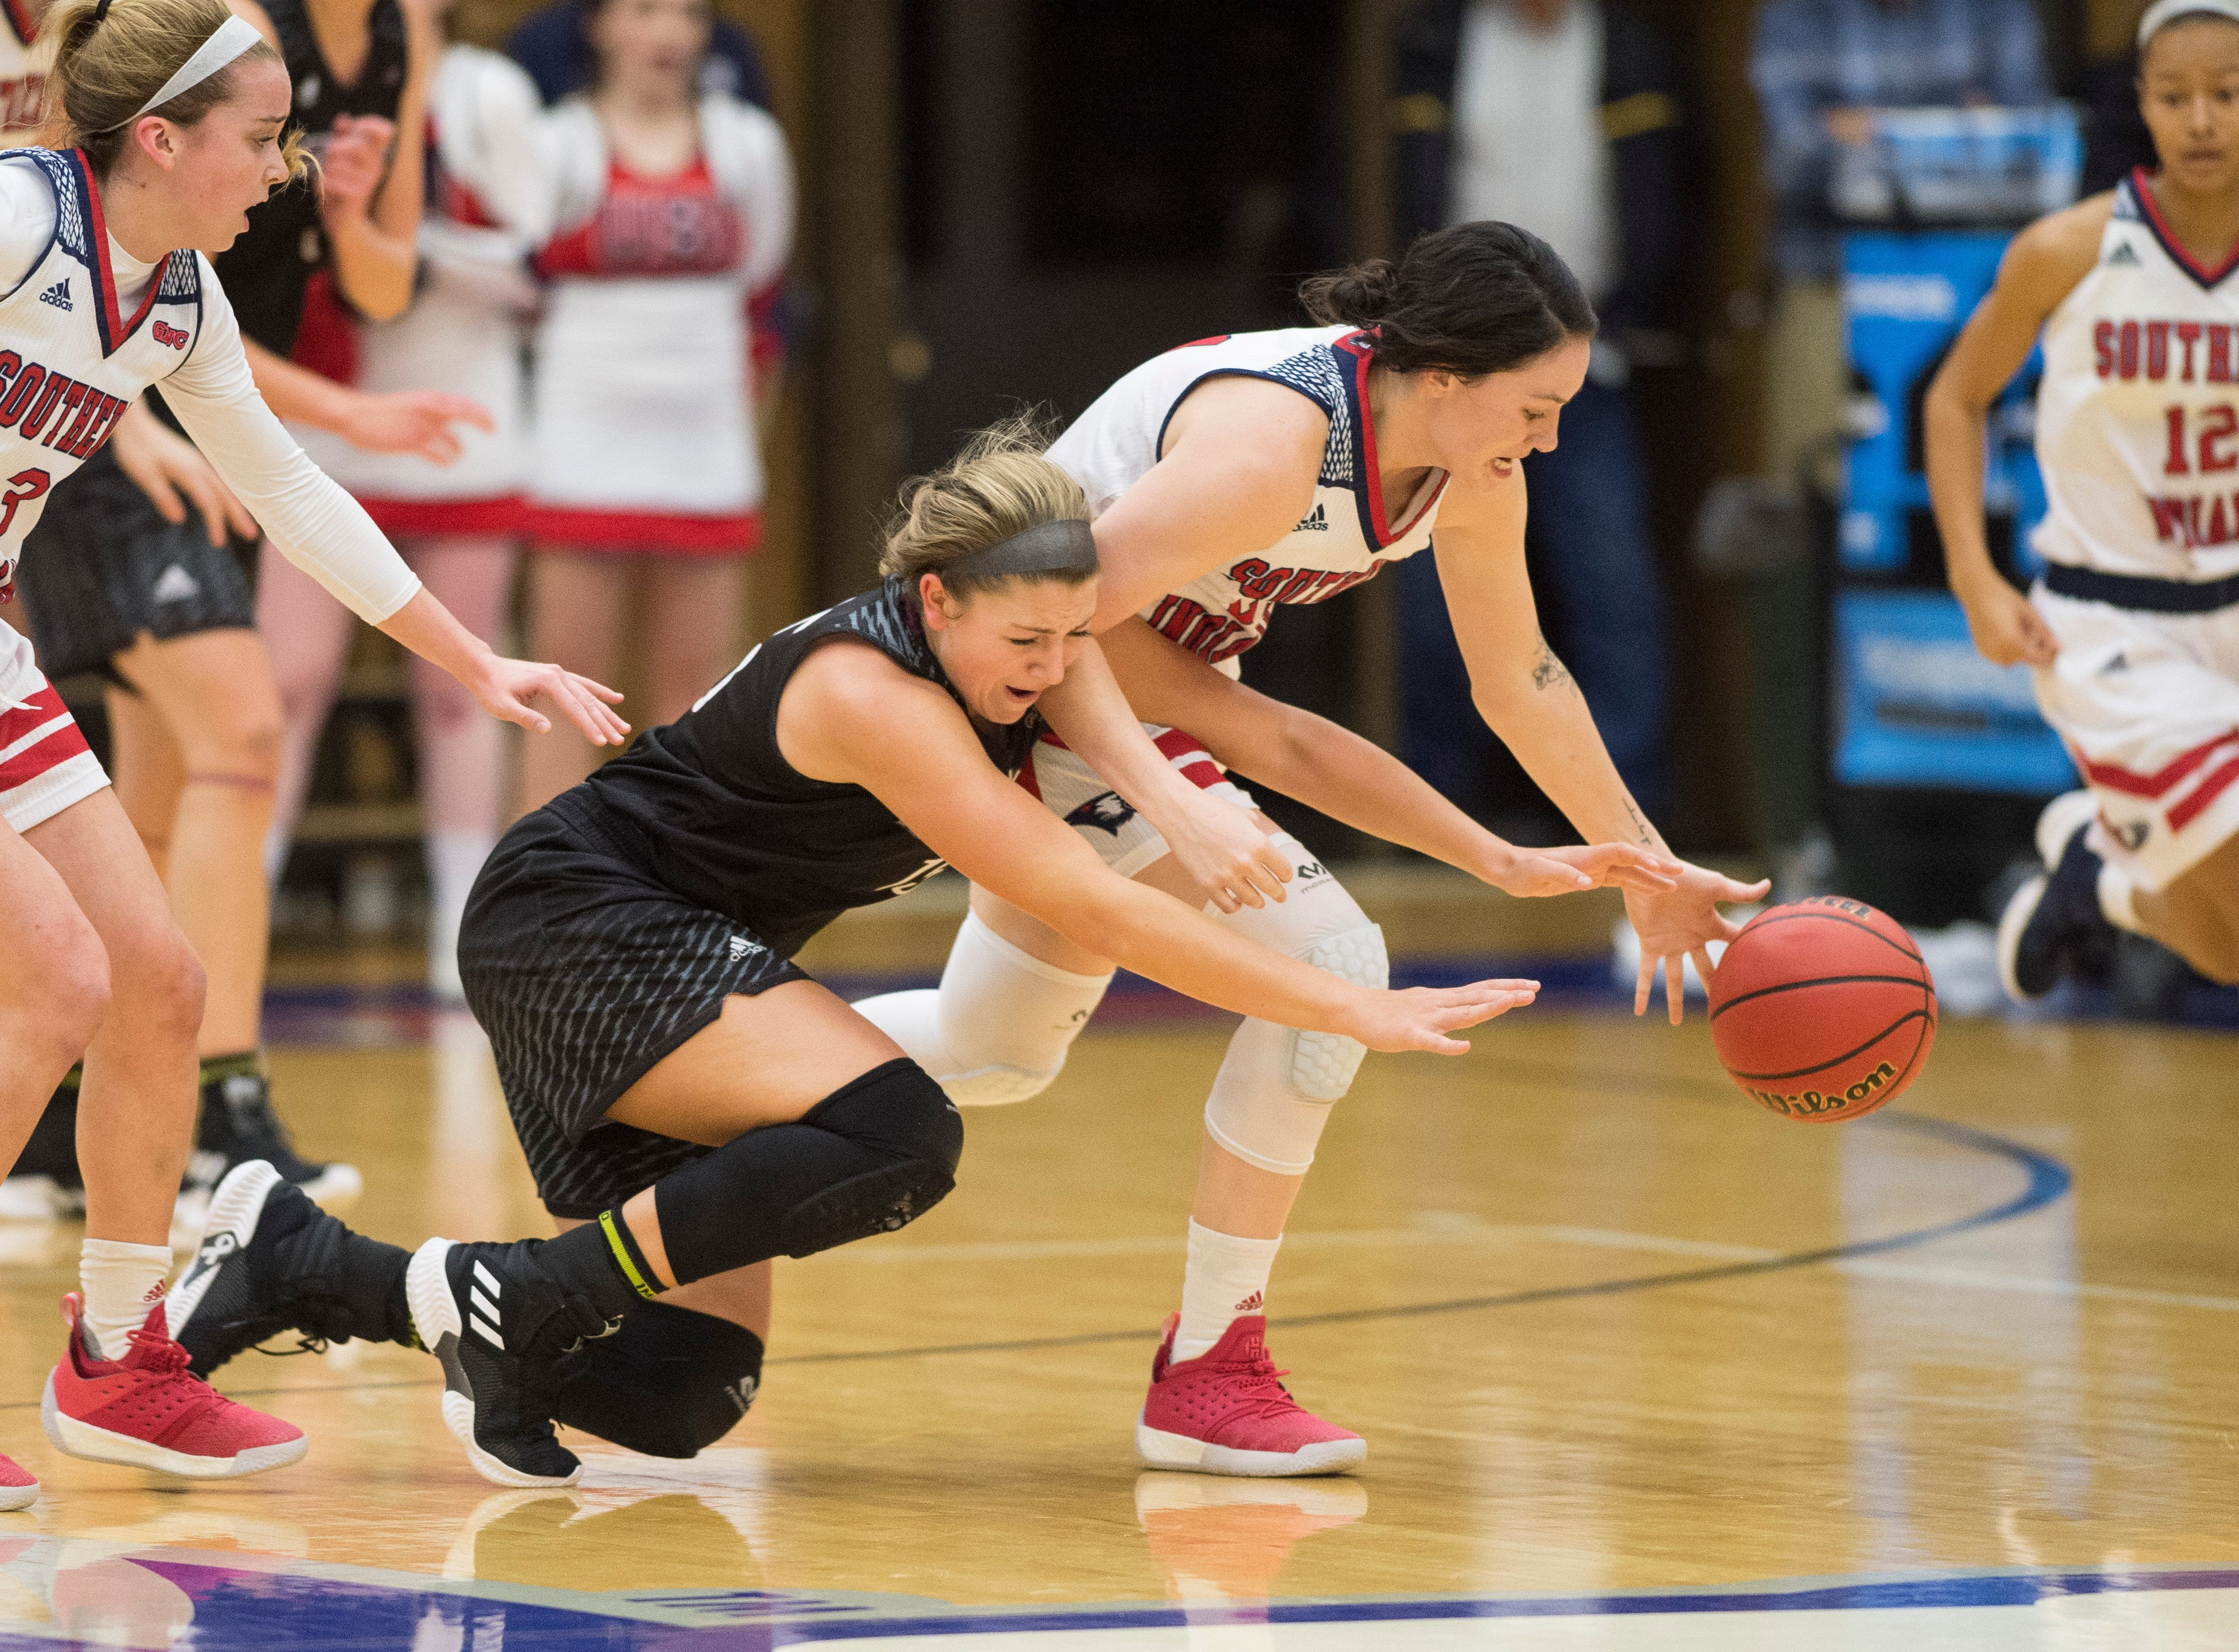 USI's Alex Davidson (21) reaches for a loose ball during the USI vs Bellarmine game at the PAC Saturday, Dec. 1, 2018.